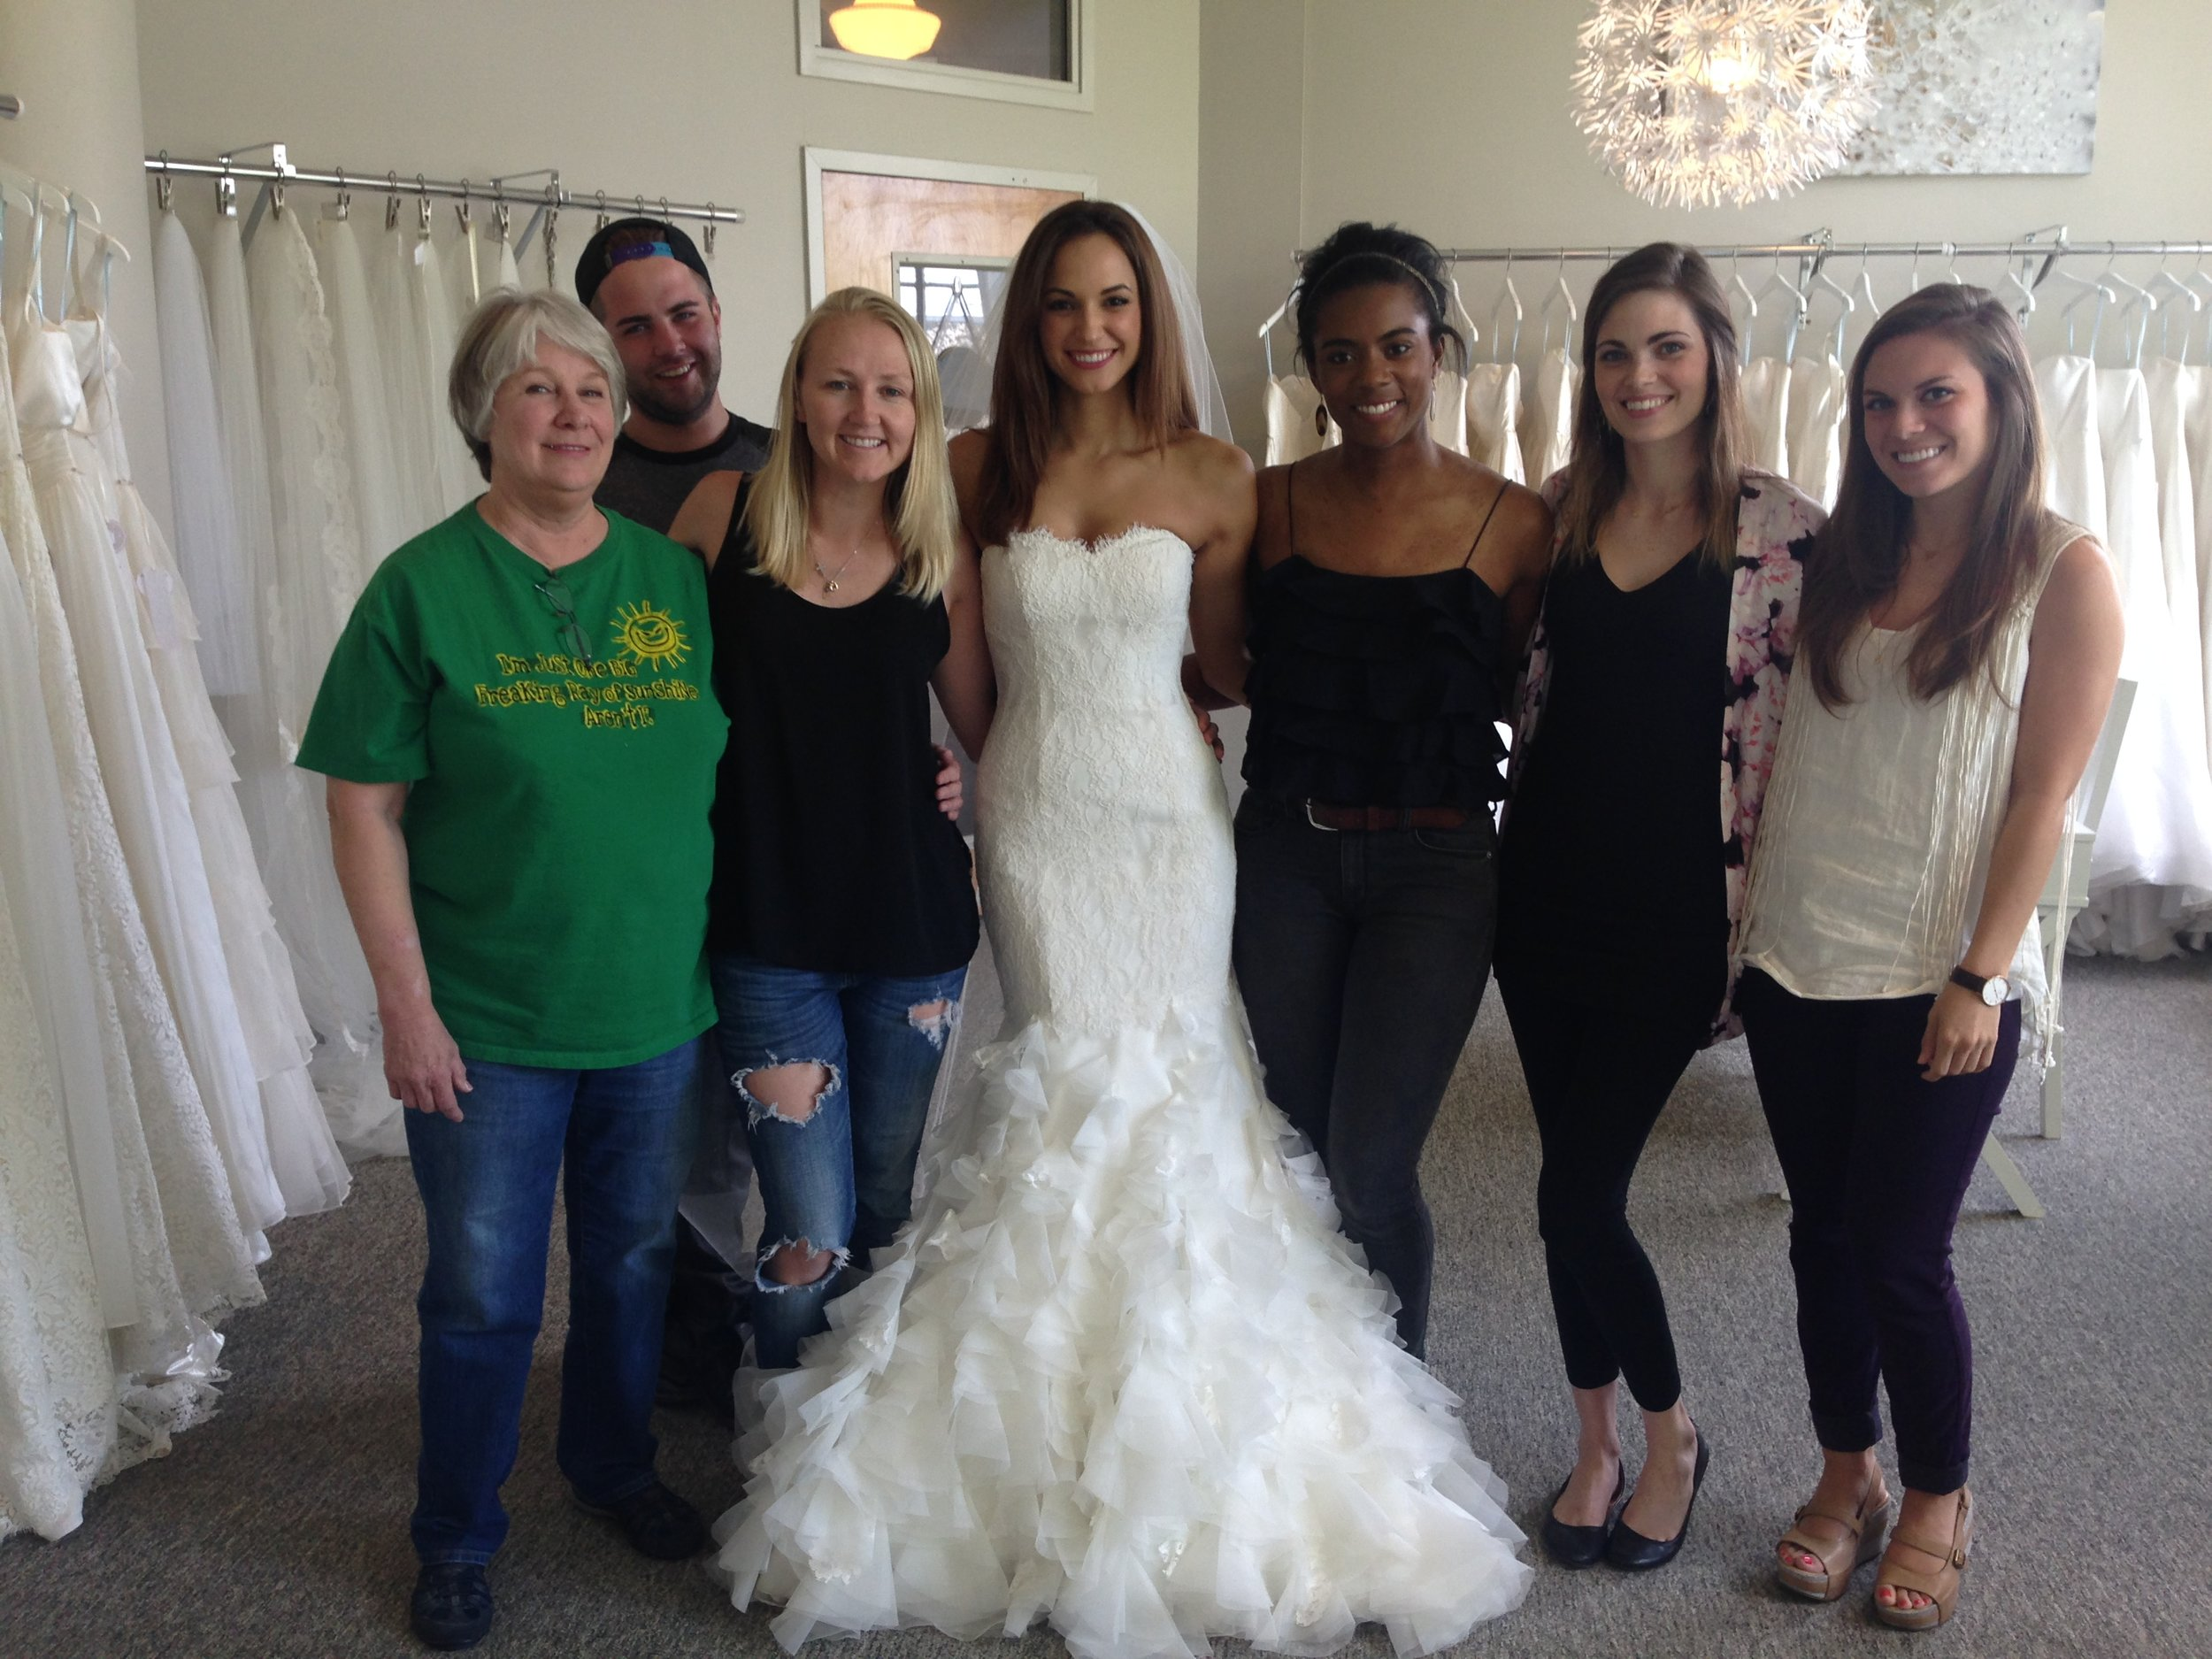 The day Heidi and her team (you may recognize from TLC) finished my dress